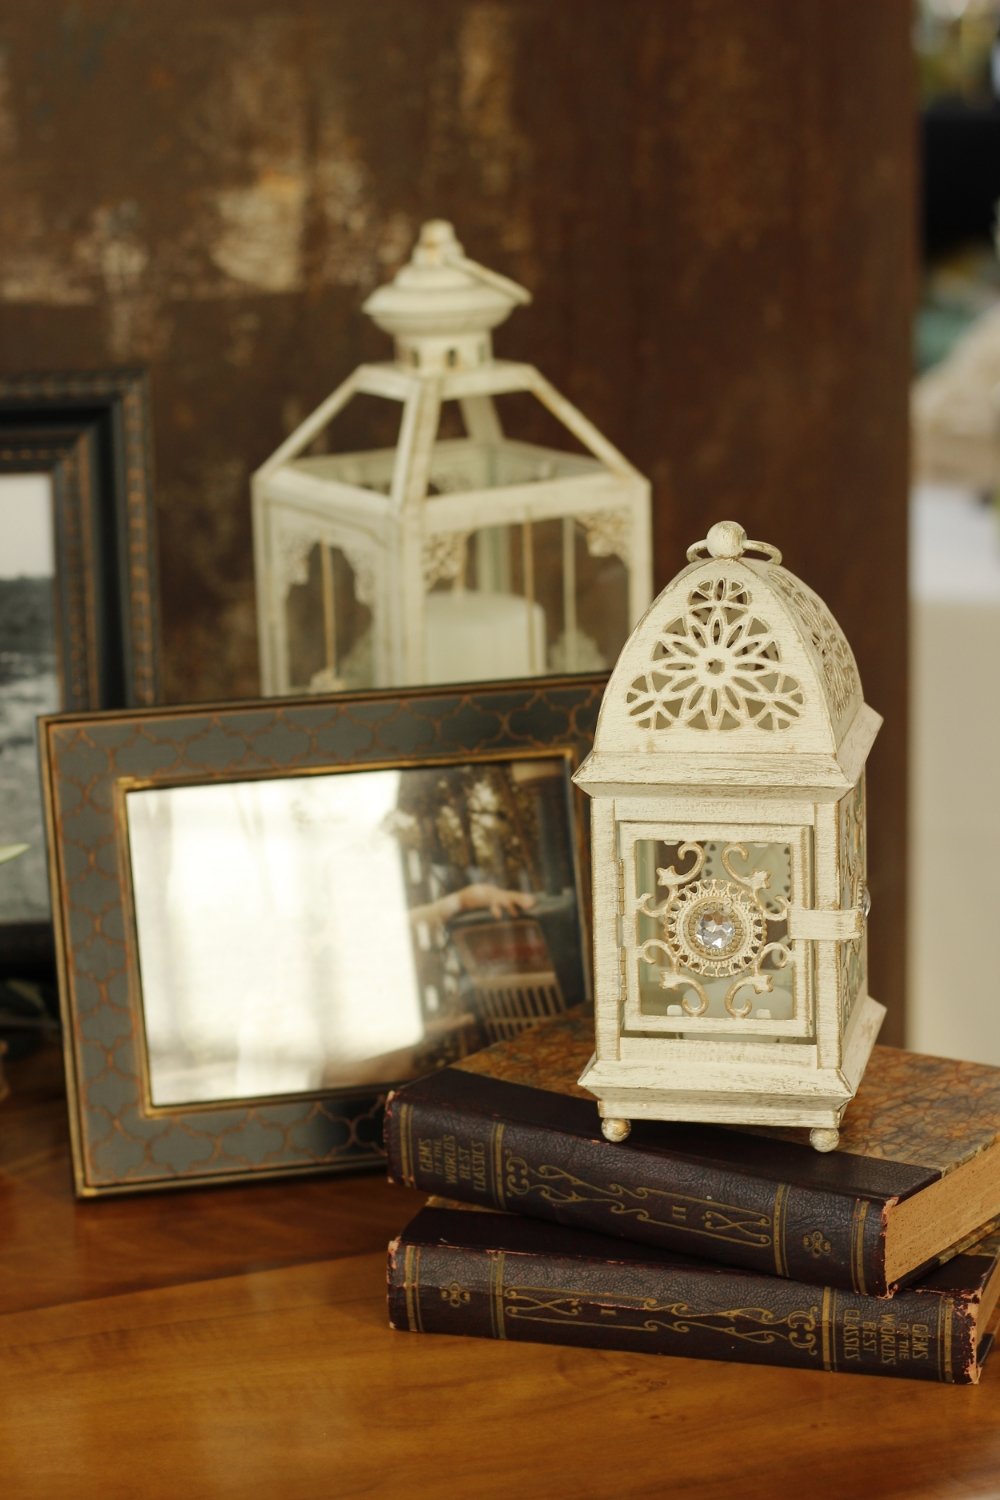 Wedding Lanterns with Books